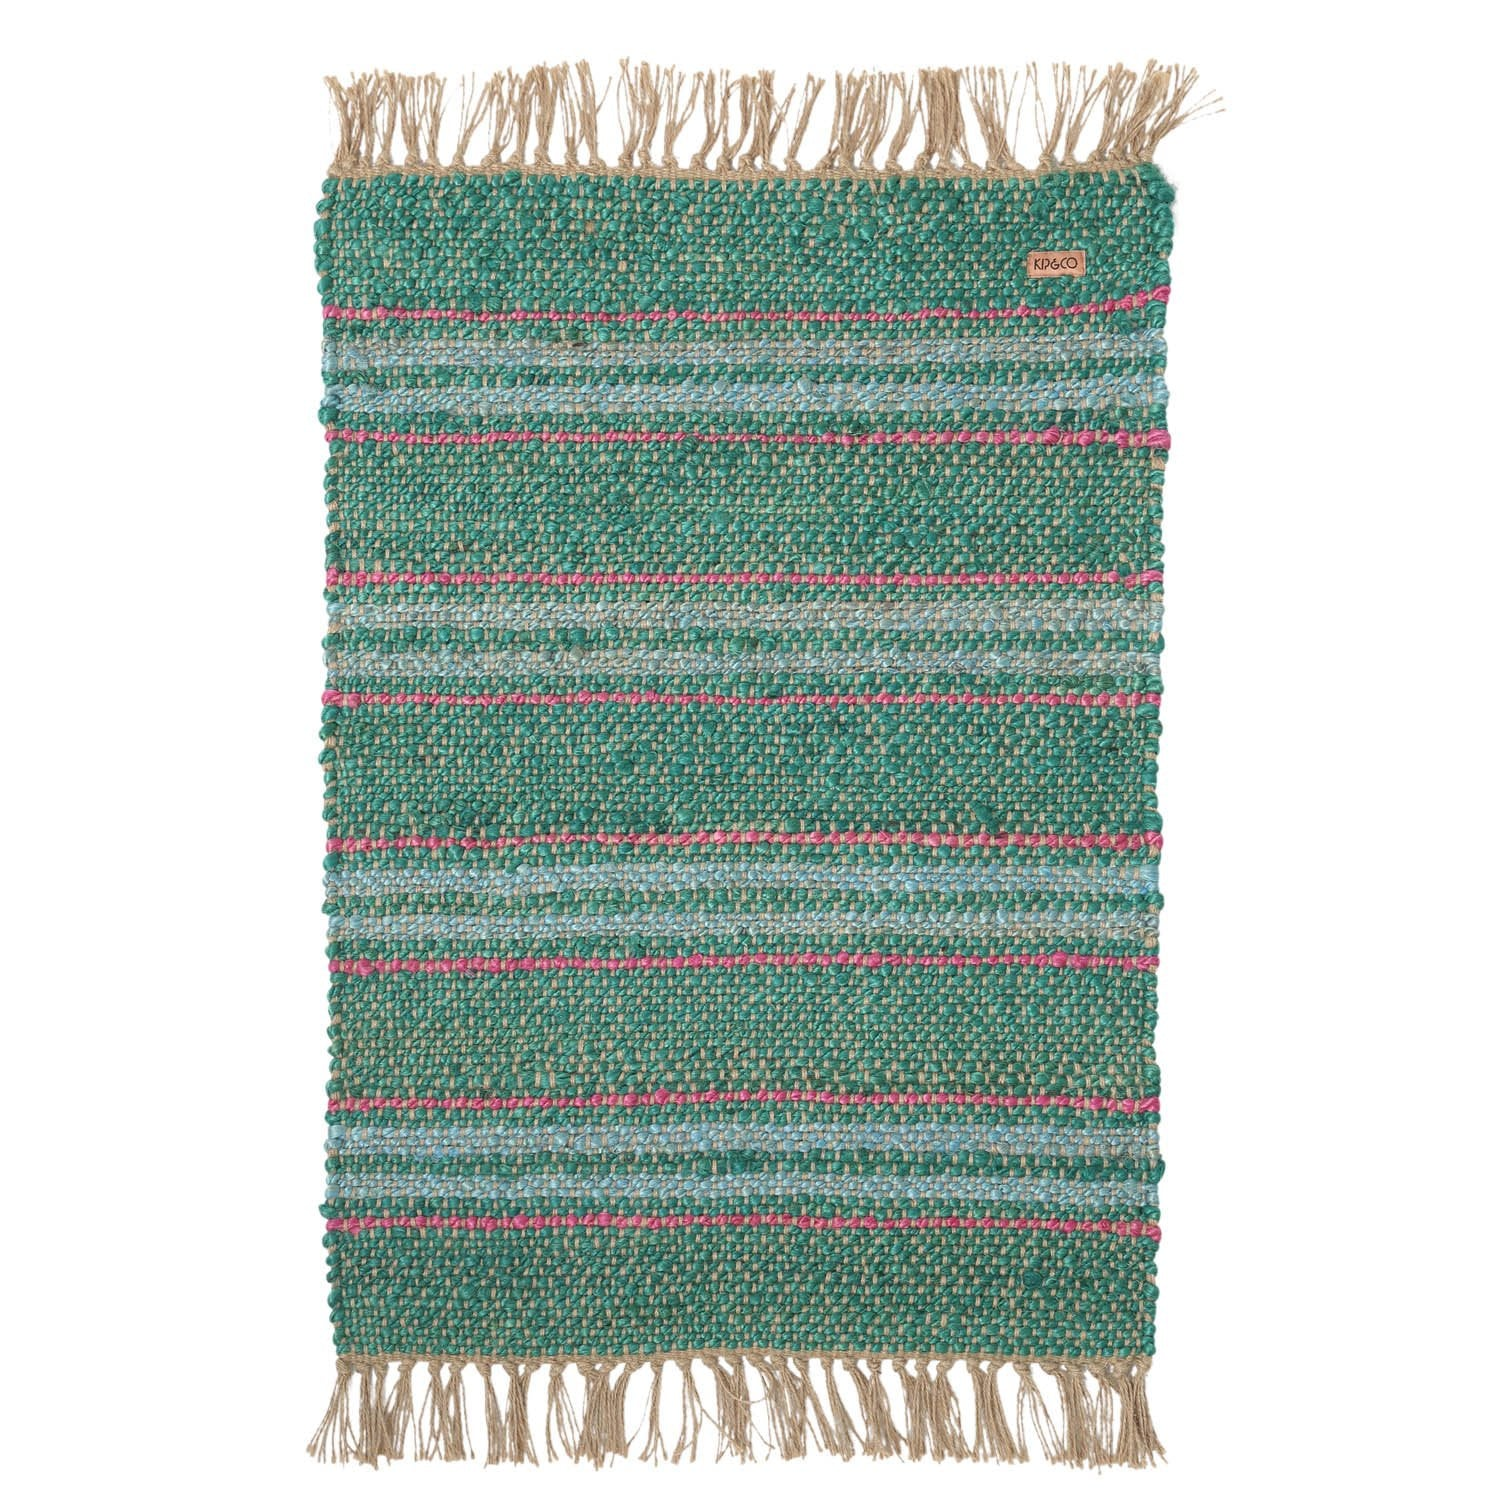 Kip & Co Tracks Jute Floor Mat - The Artisan Storeroom